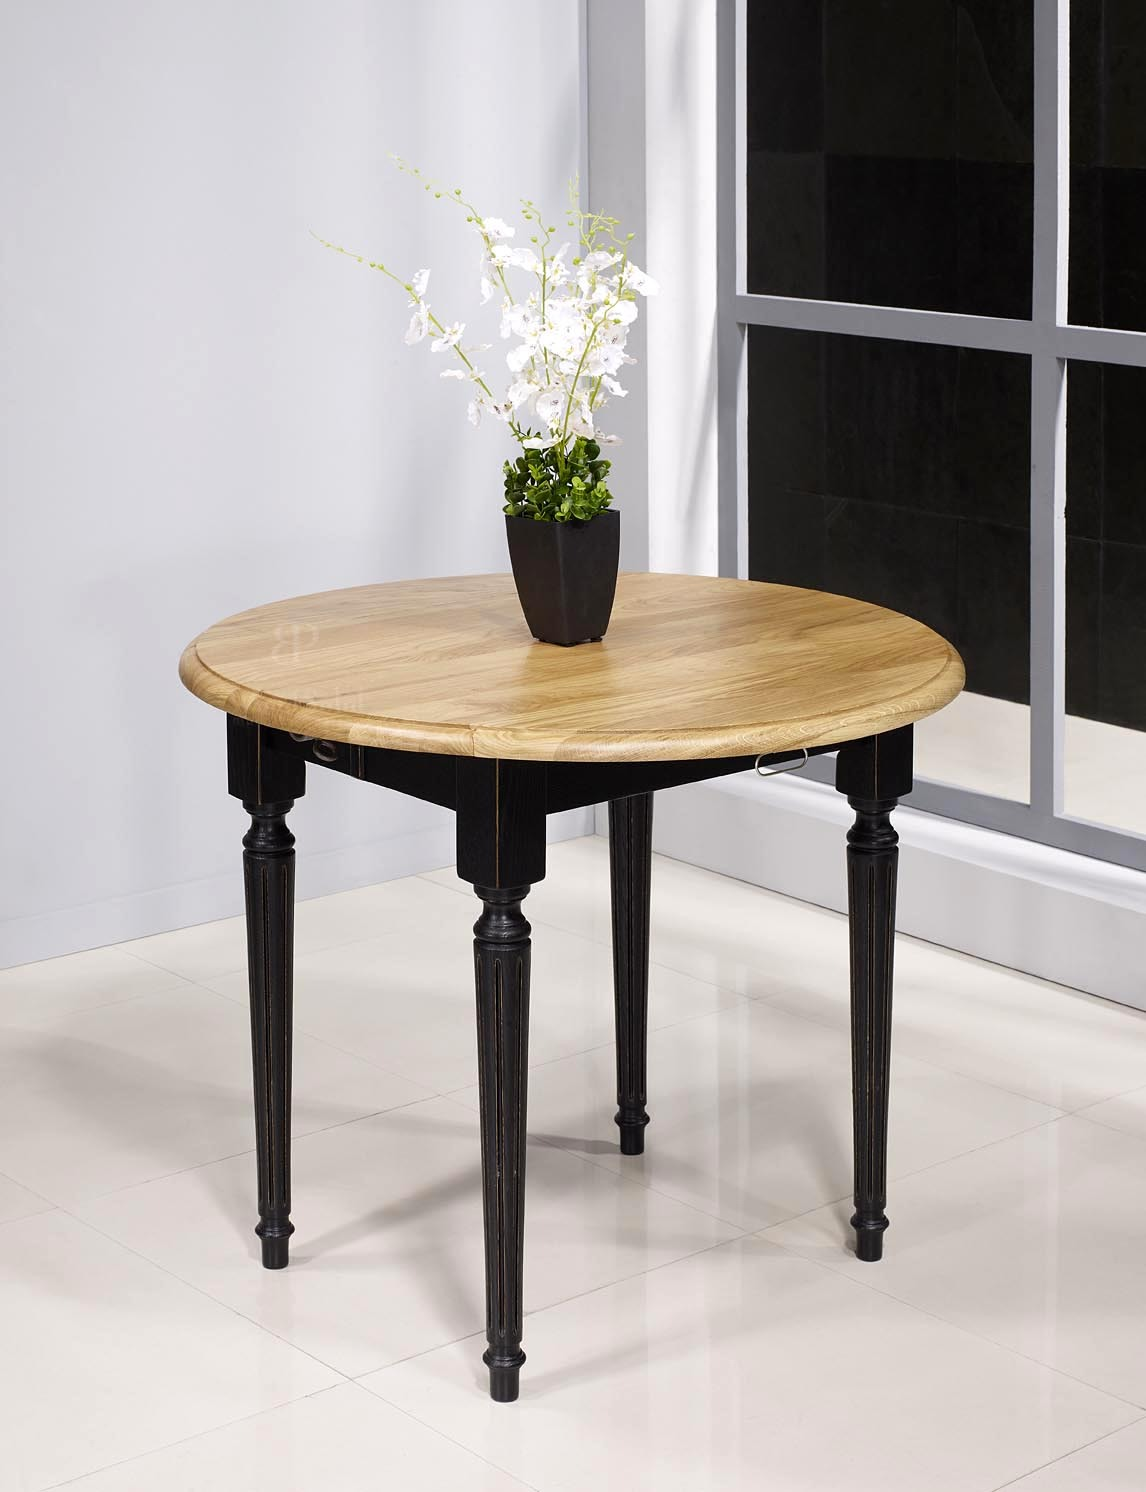 Table ronde volets diam tre 90 en ch ne massif de style for Table ronde noire avec rallonge